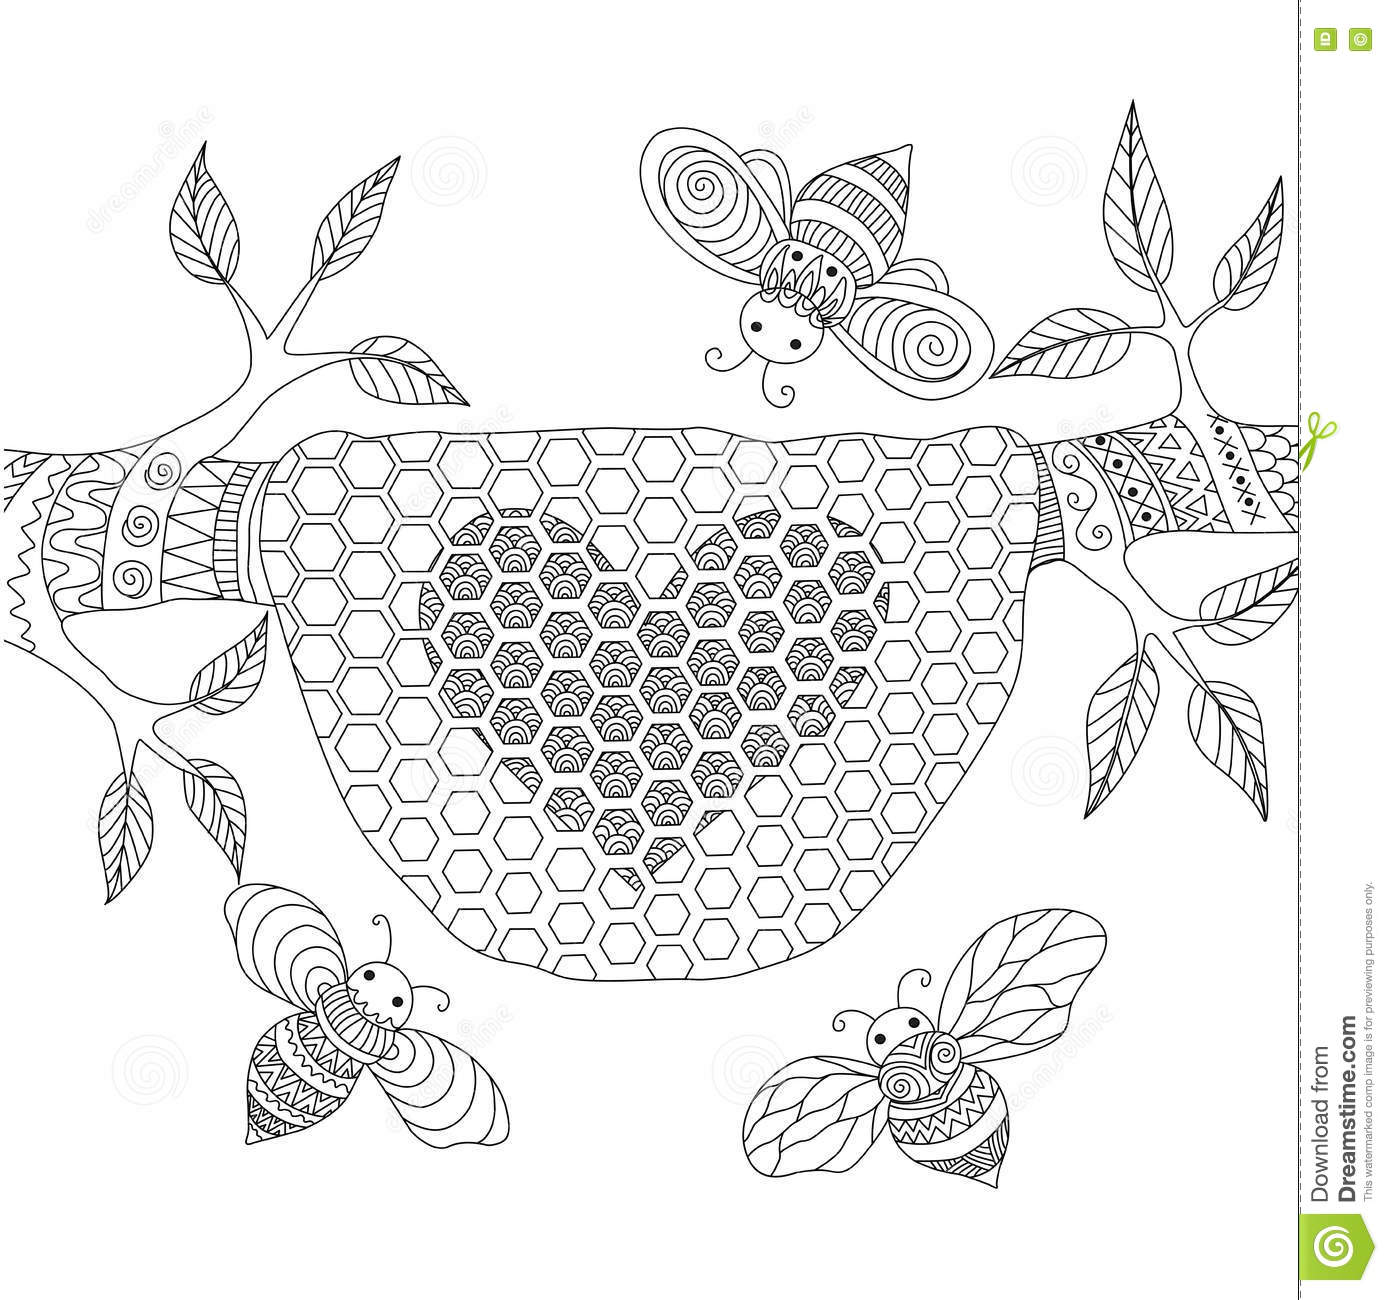 Line Art Card Design : Line art design of honey bees flying around beehive stock